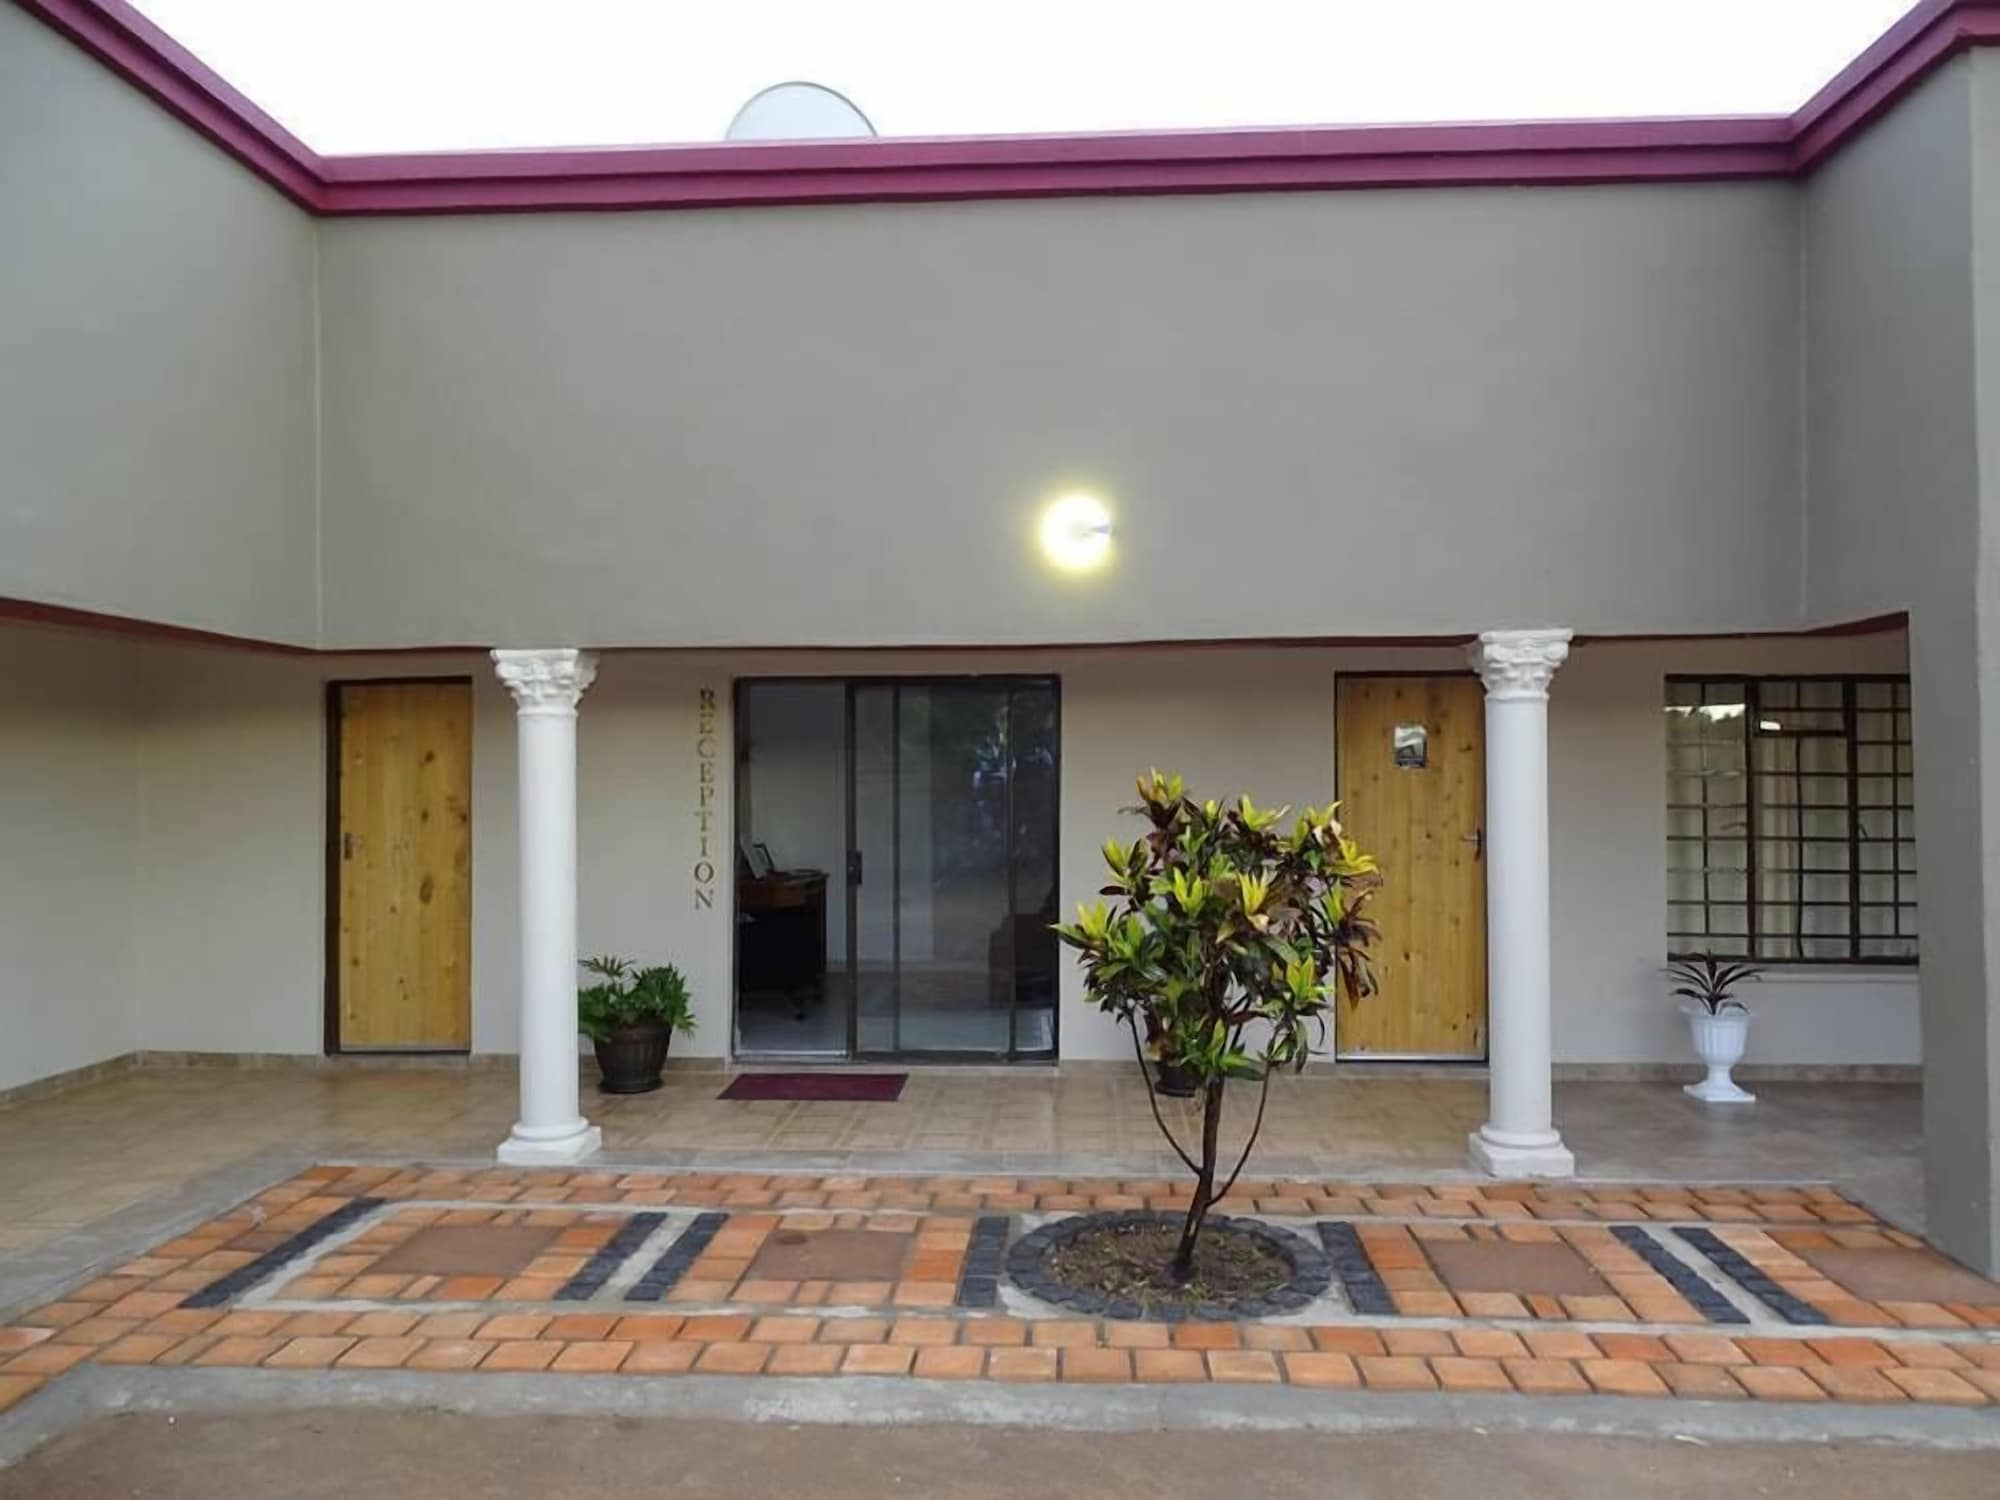 Goora-Motho Guest House, Kweneng South